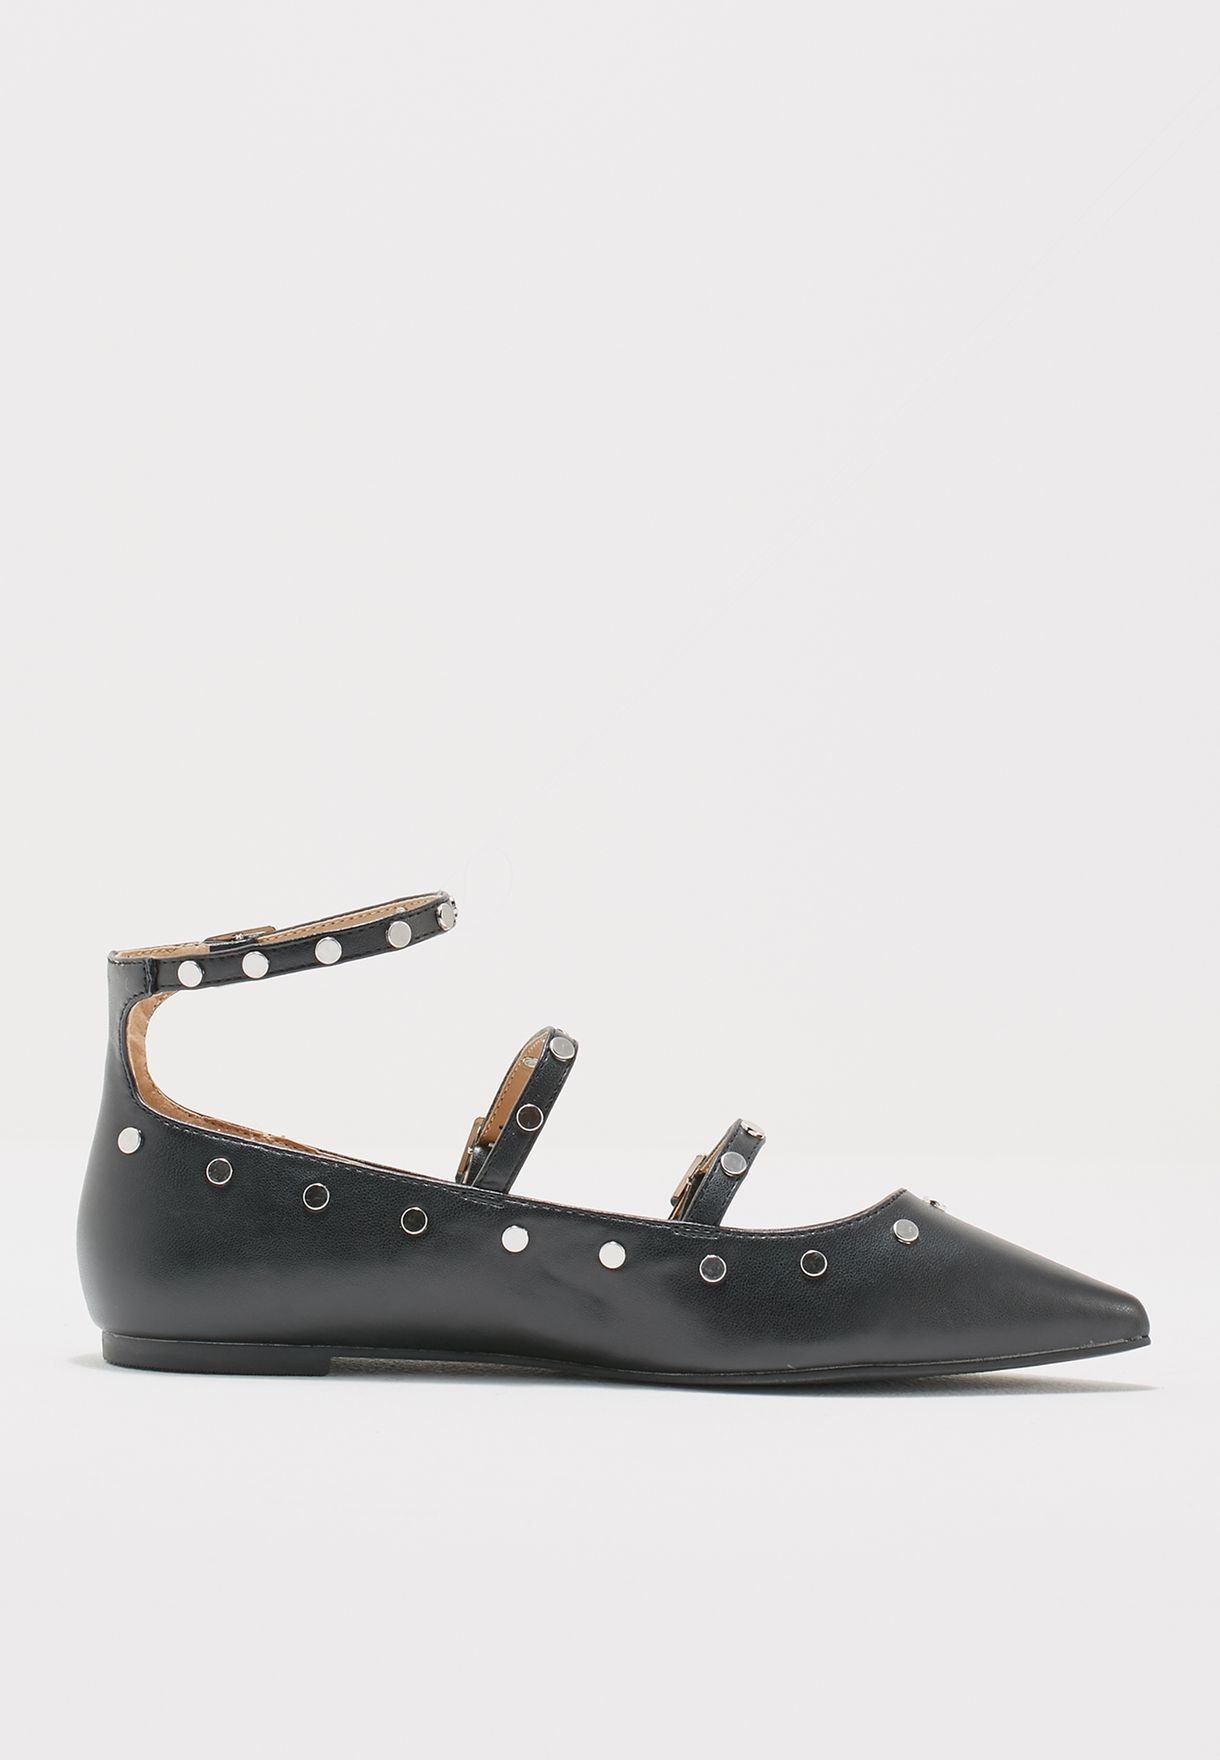 fb4665b6752502 Shop Topshop black Arabelle Studded Shoes 42A05MBLK for Women in Saudi -  TO856SH44IUL